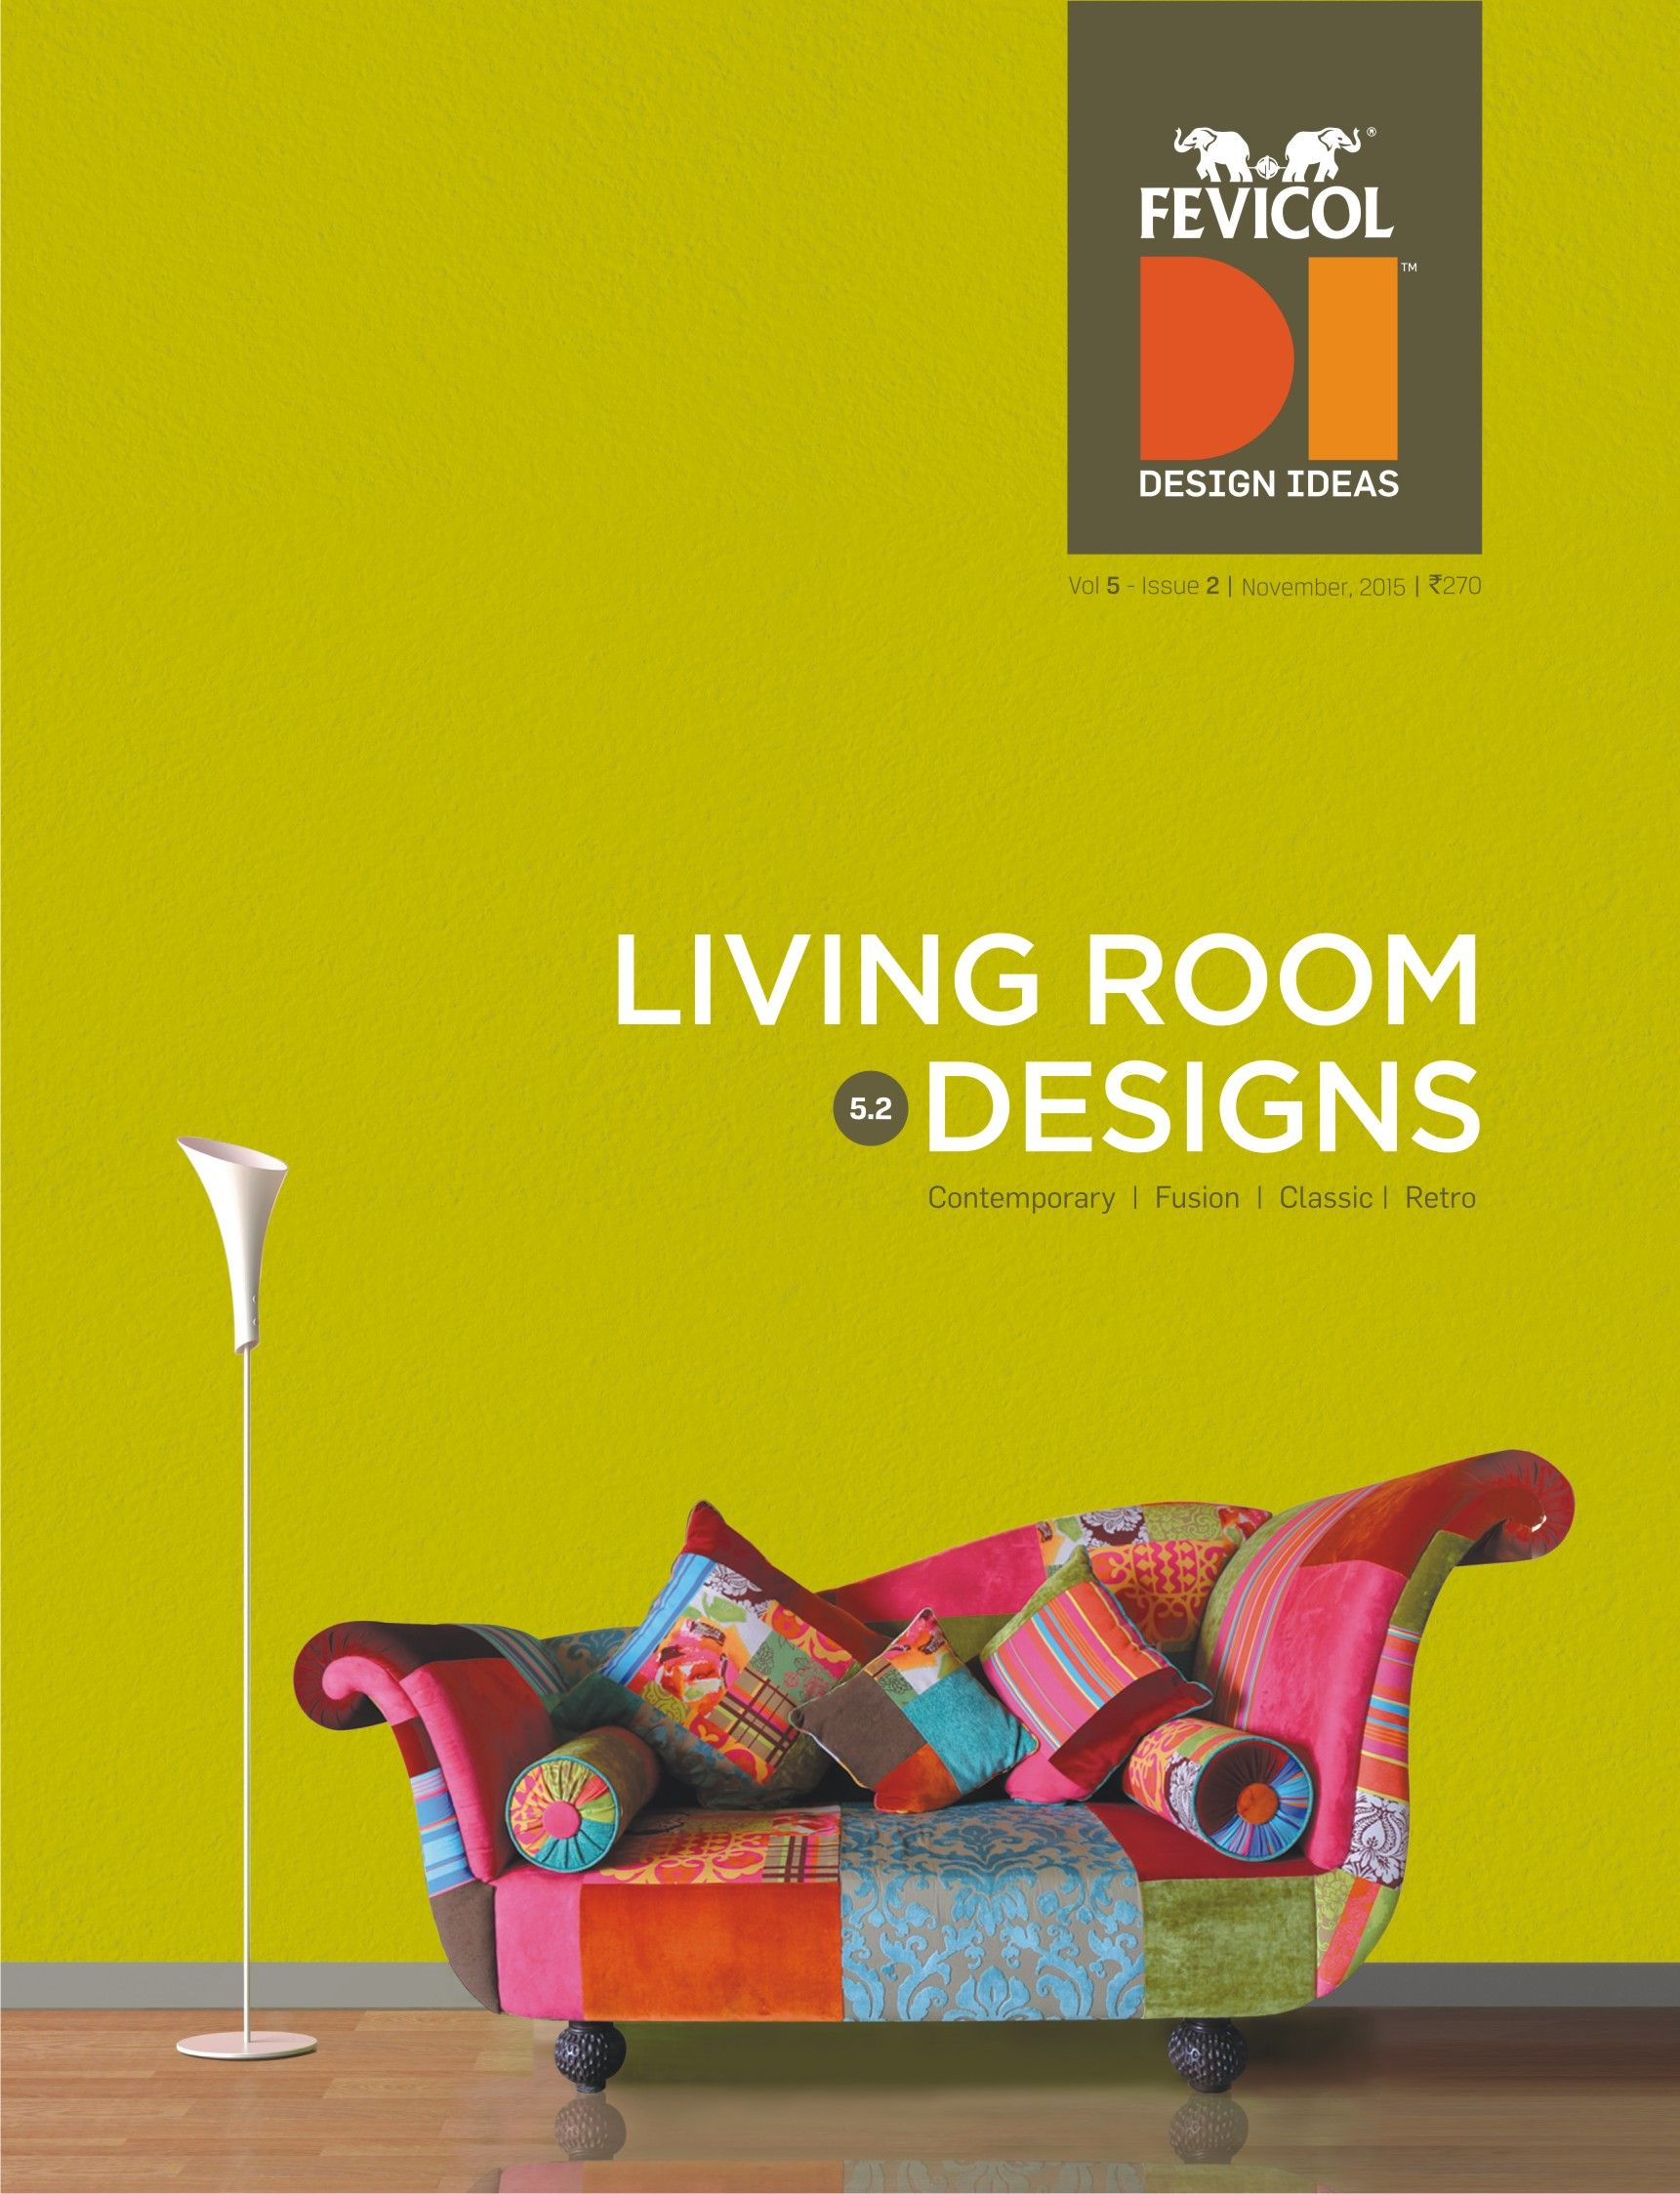 Fevicol design ideas 5 2fevicol furniture bookbuy online